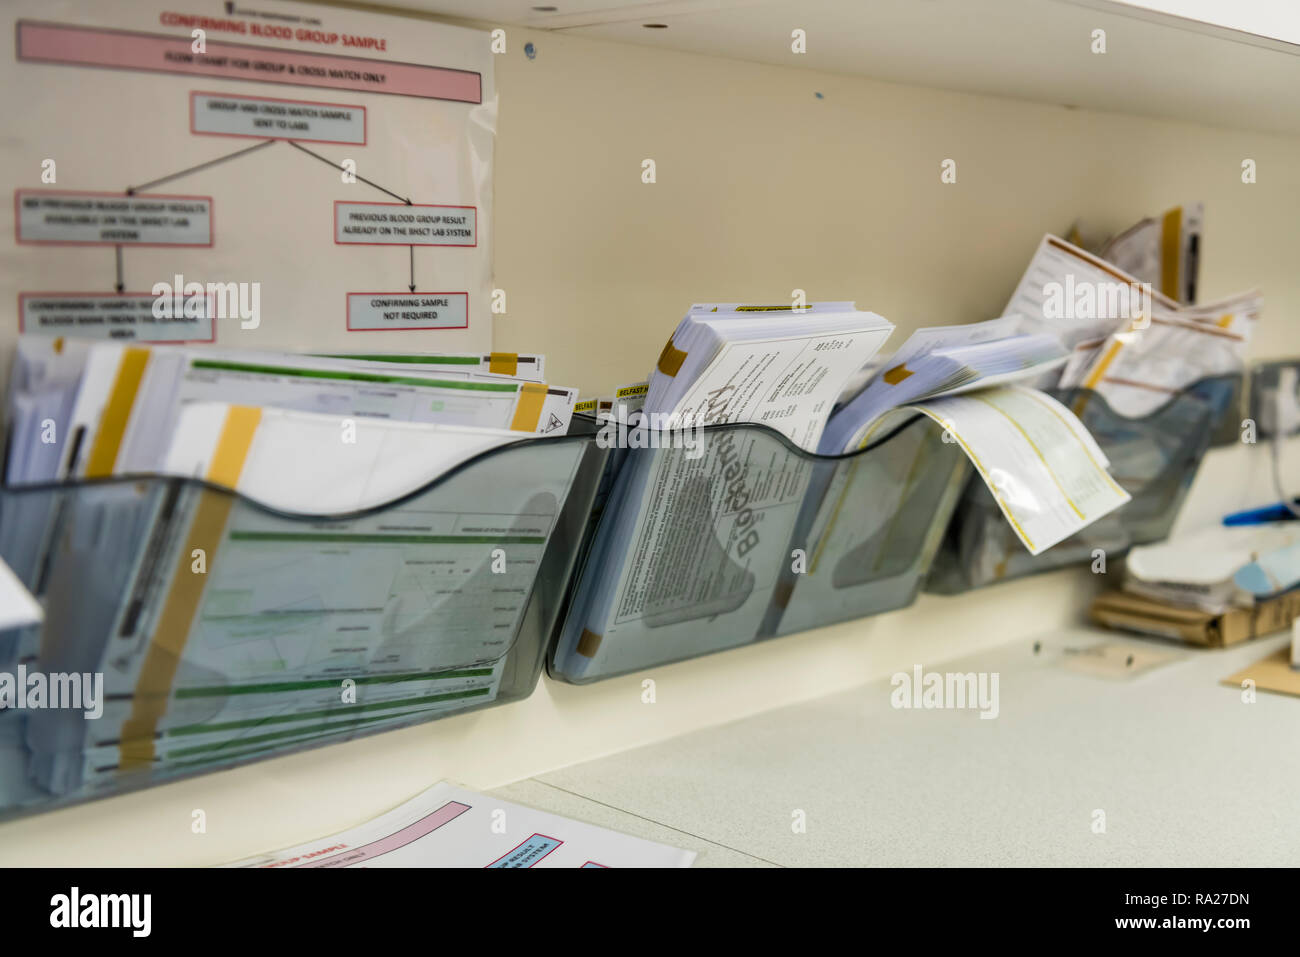 Forms for blood analysis in a hospital treatment room - Stock Image